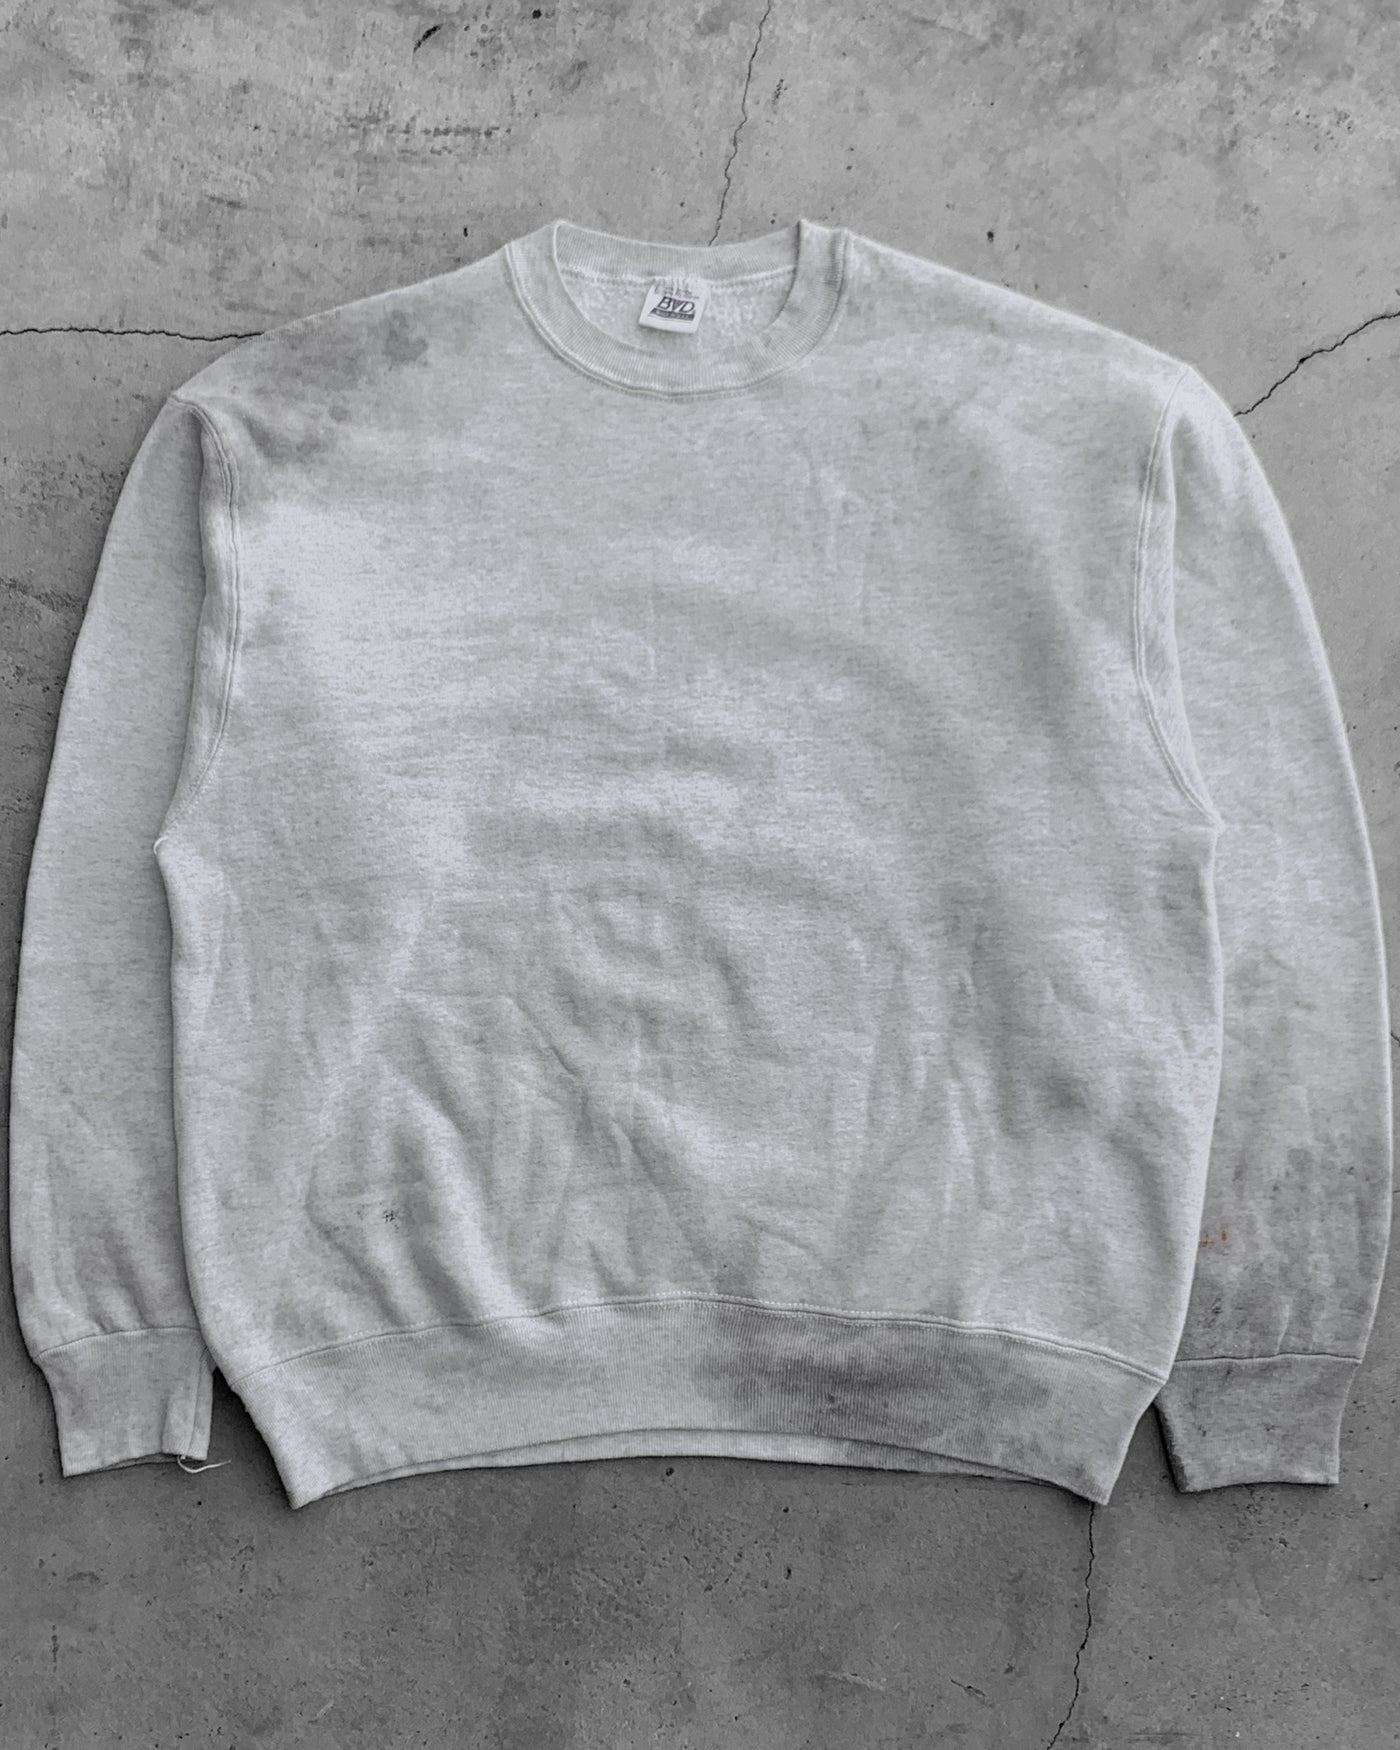 Oil-Stained Grey Crewneck Sweatshirt - 1990s